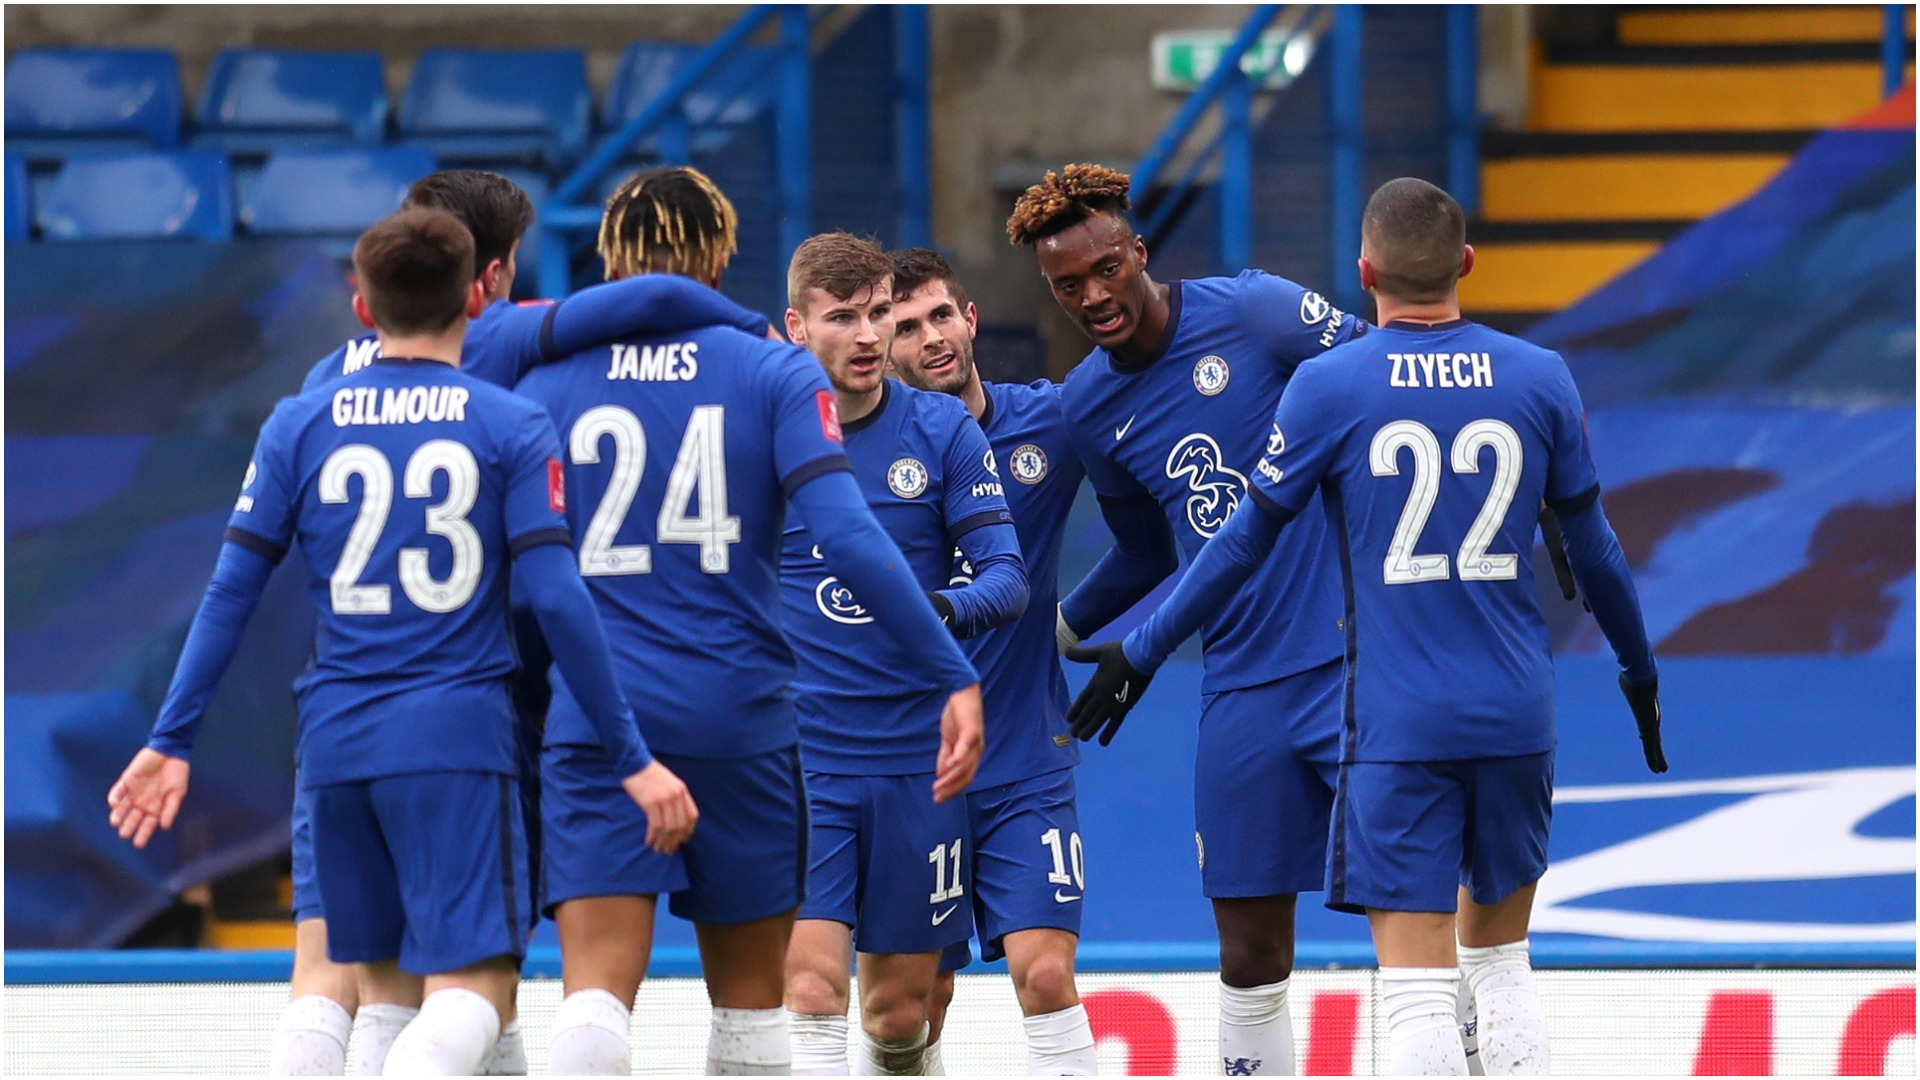 Chelsea 3-1 Luton Town: Abraham hits hat-trick as Kepa and Werner falter